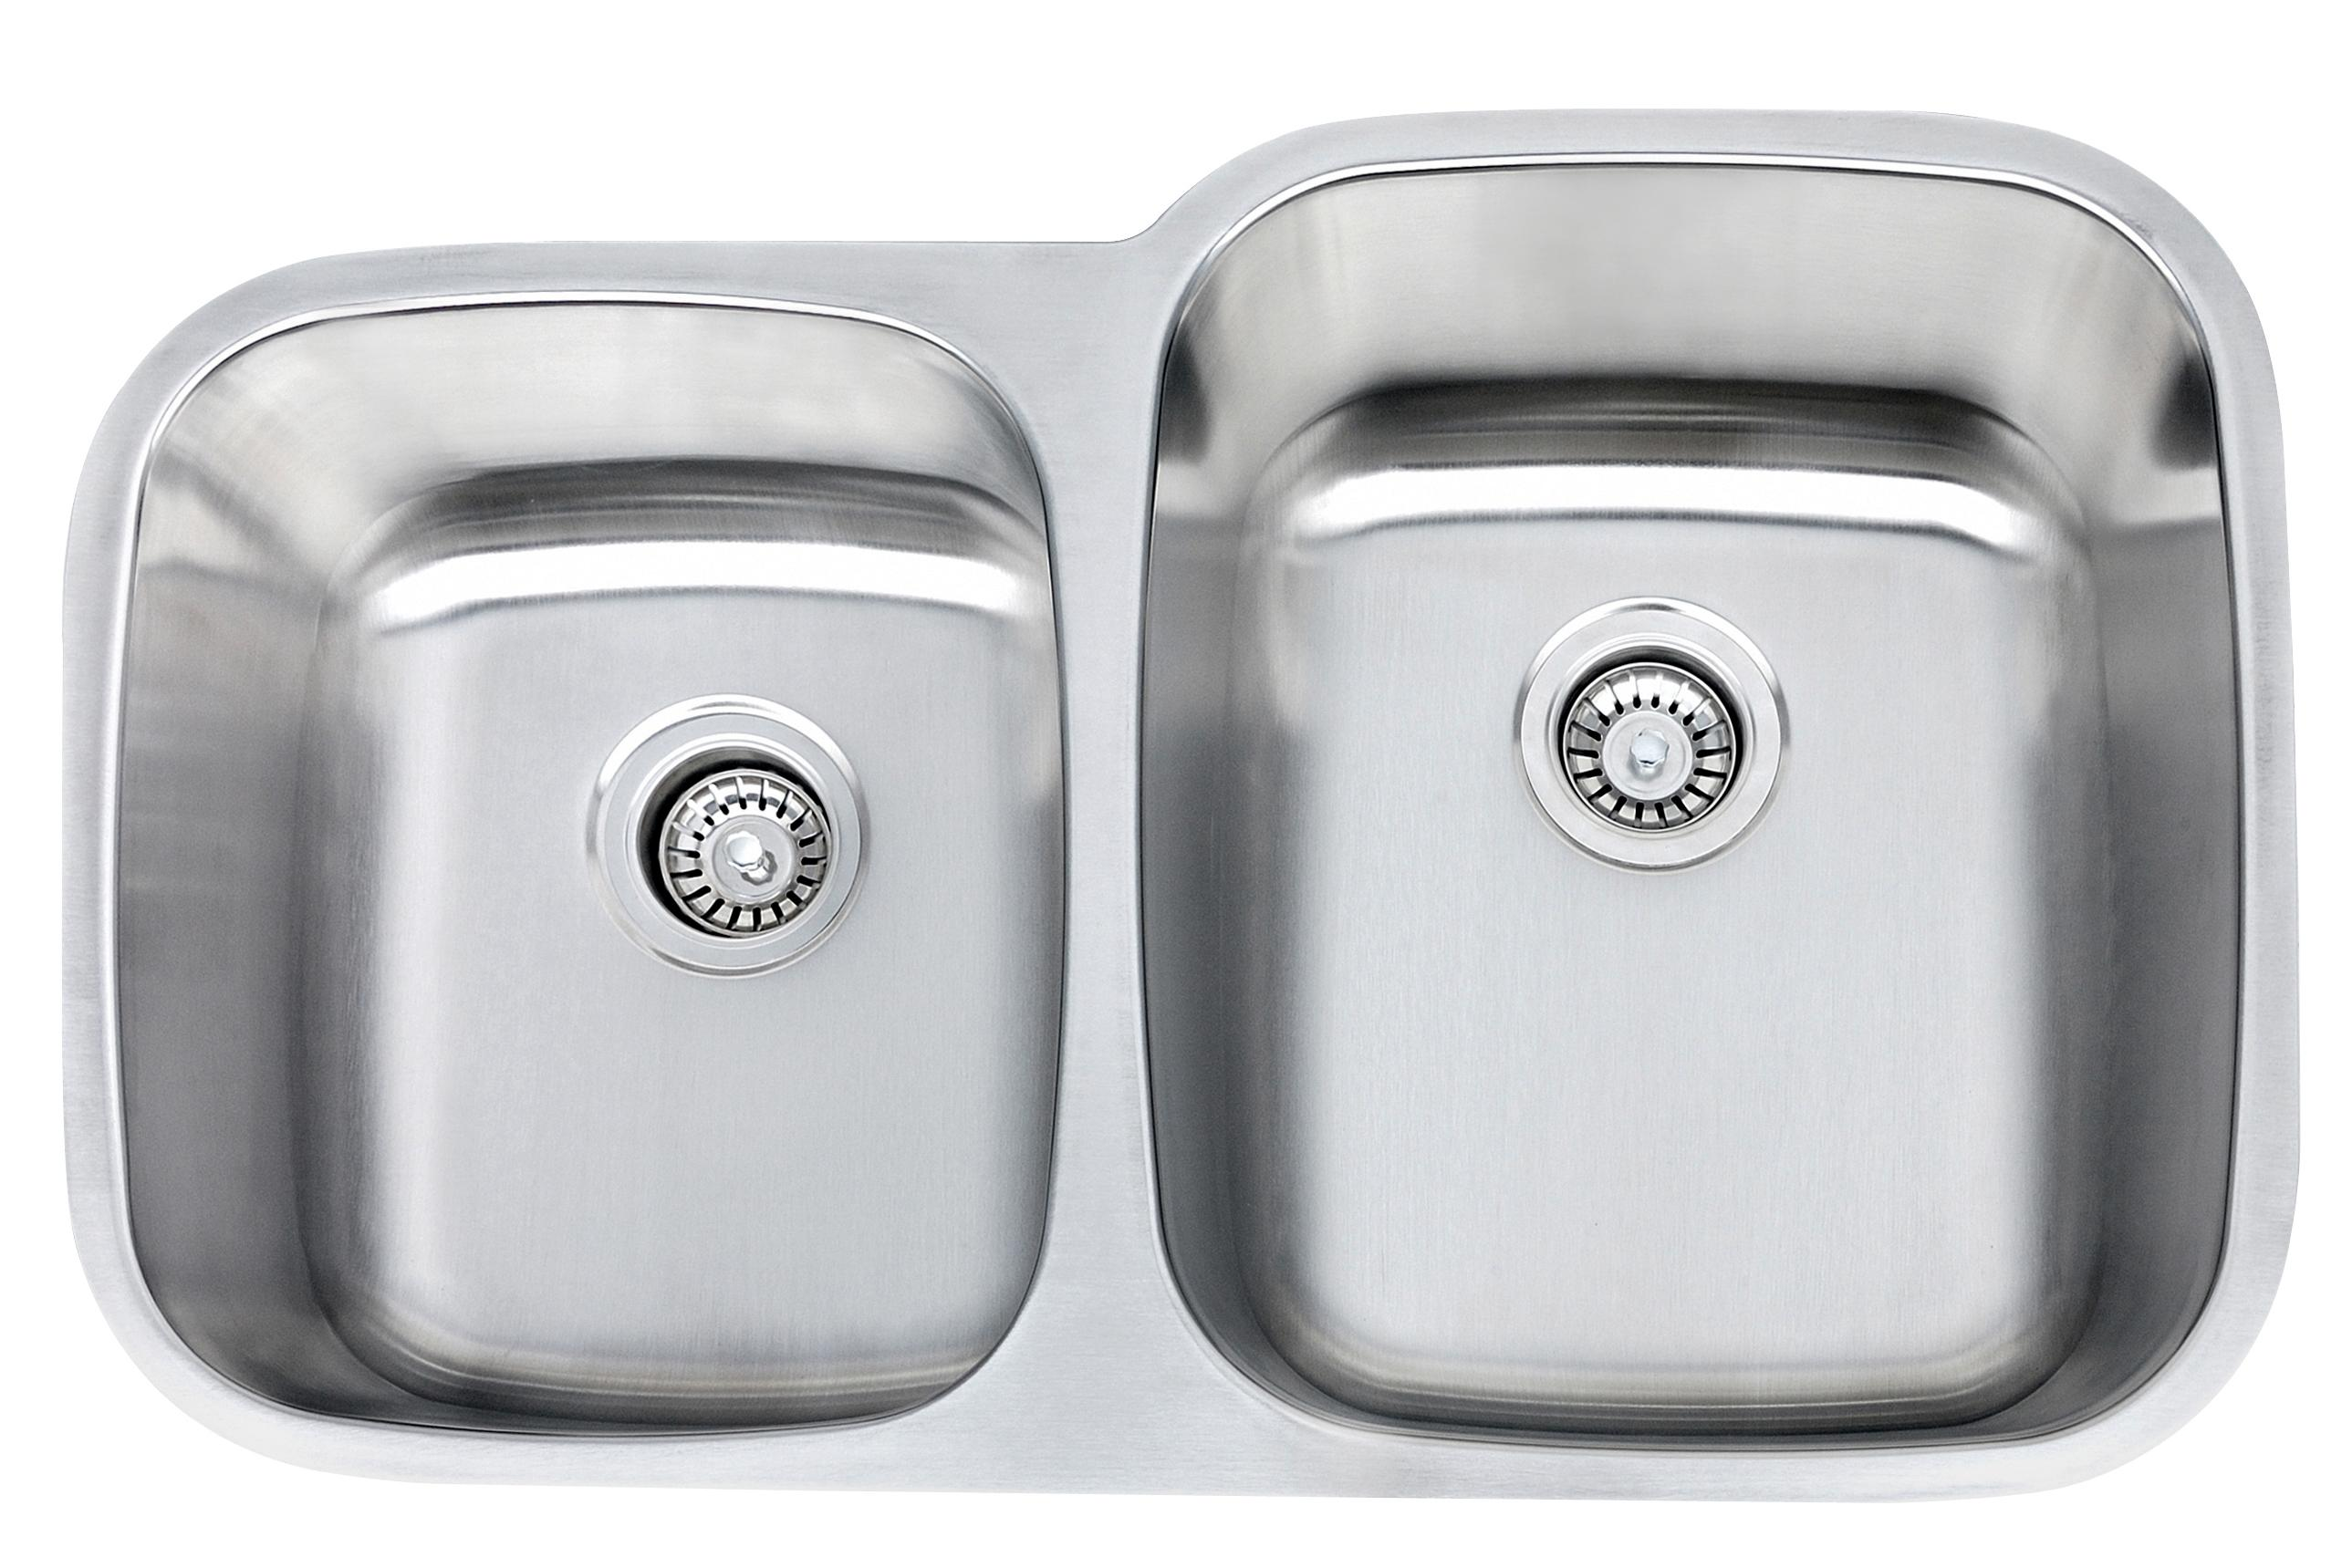 Undermount Kitchen Sink KY907-46 40/60 | KpaxInc